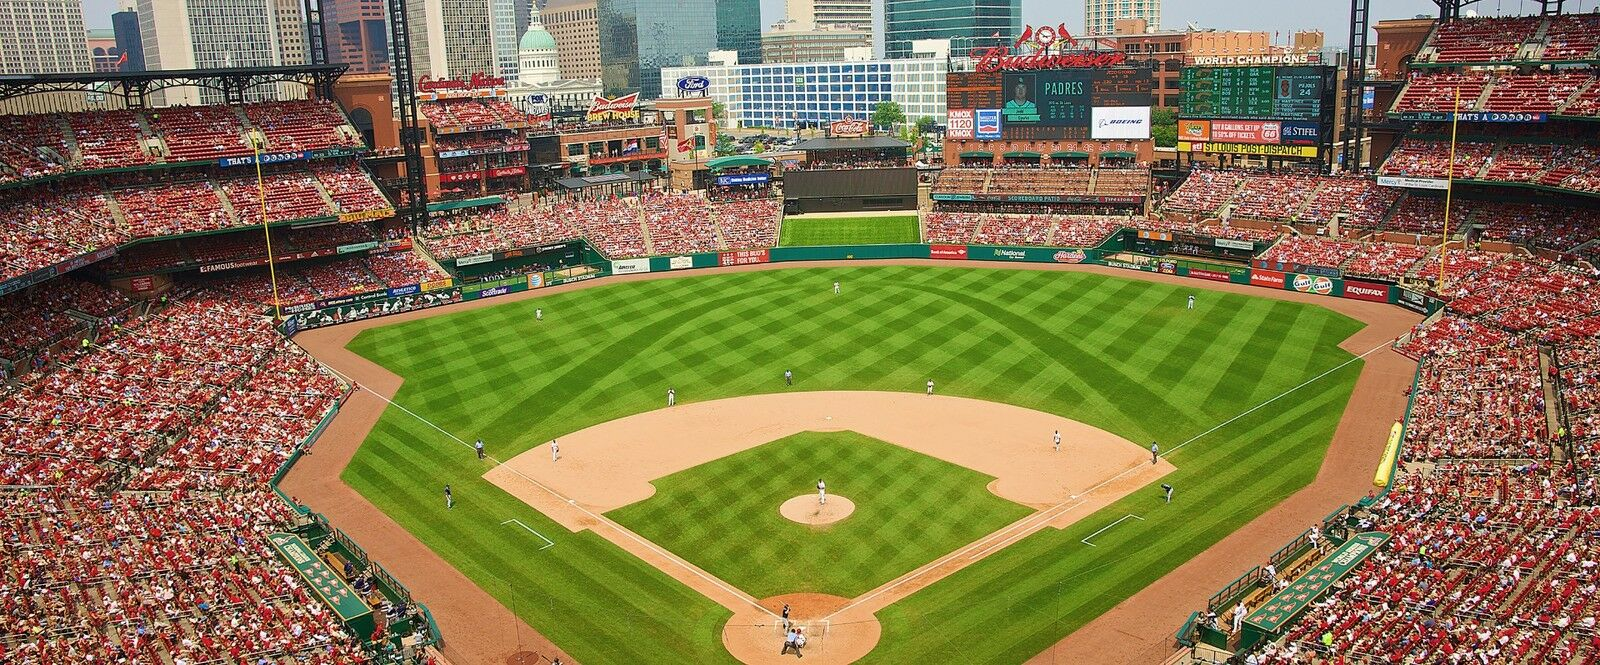 Chicago Cubs at St. Louis Cardinals